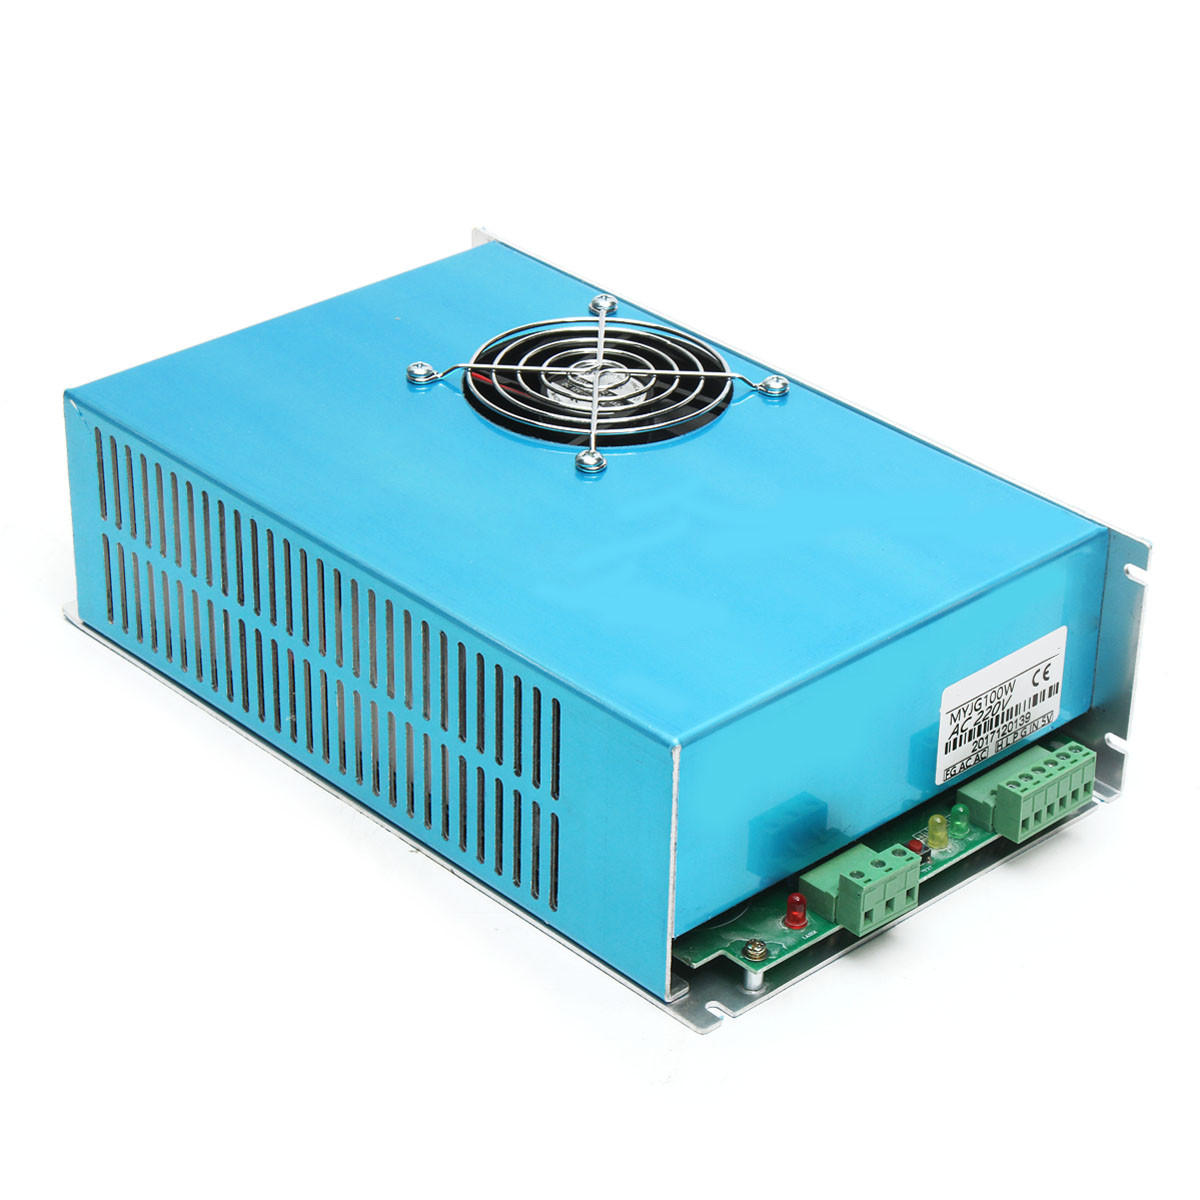 Hy-t60 Laser Power Supply For Mini Wood Engraving Machine Fashionable Style; In